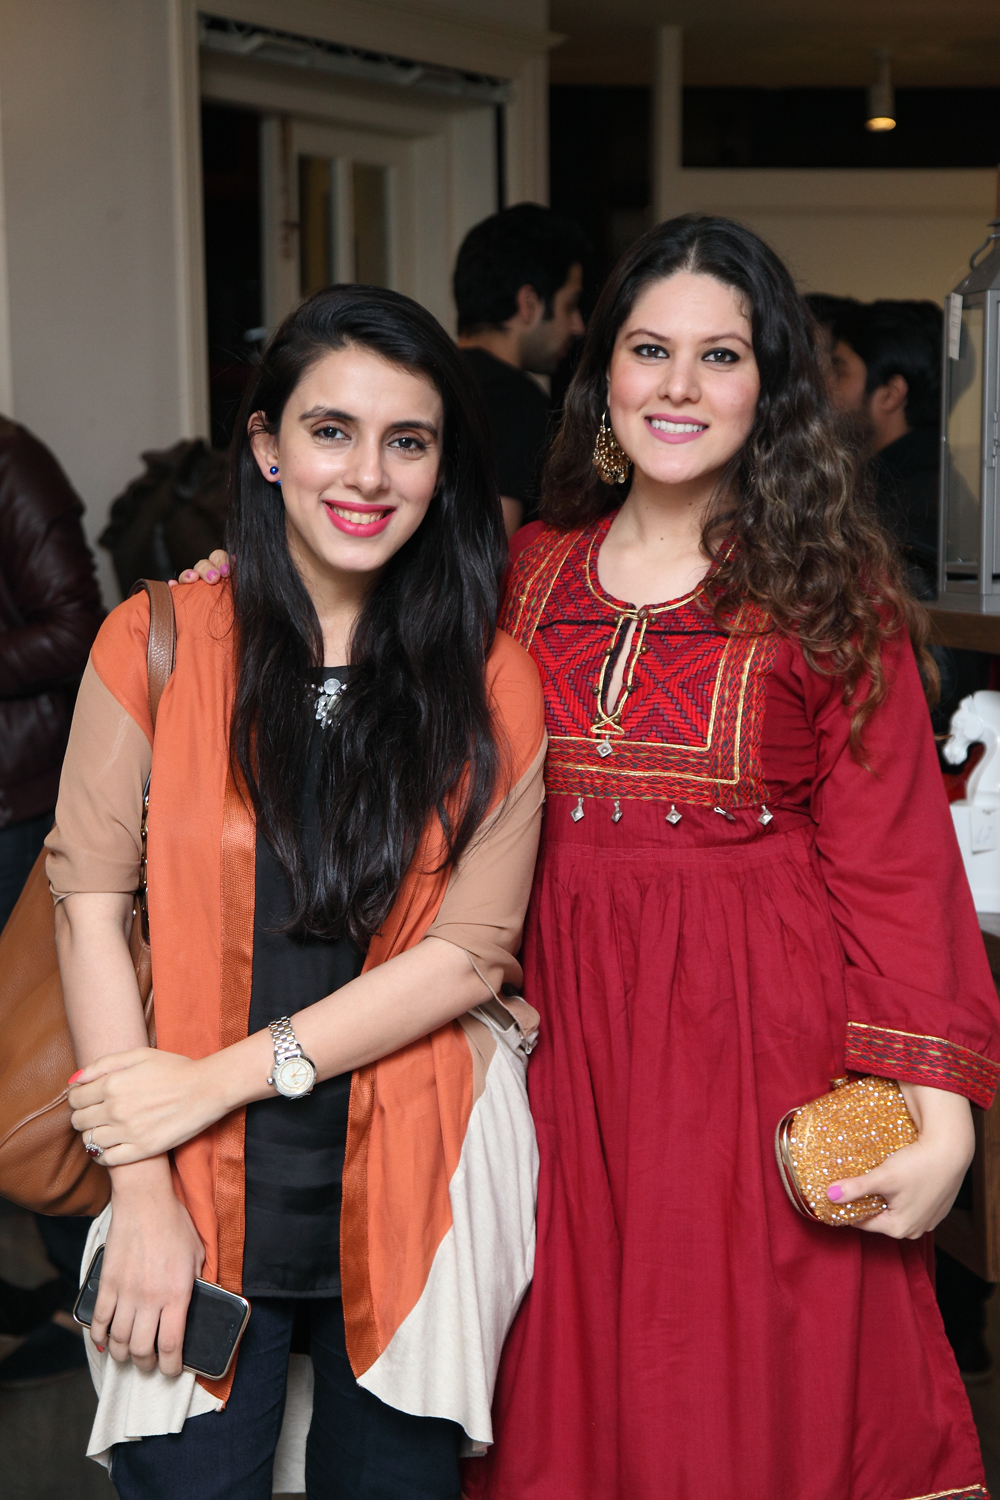 Mariam and Purniya Awam